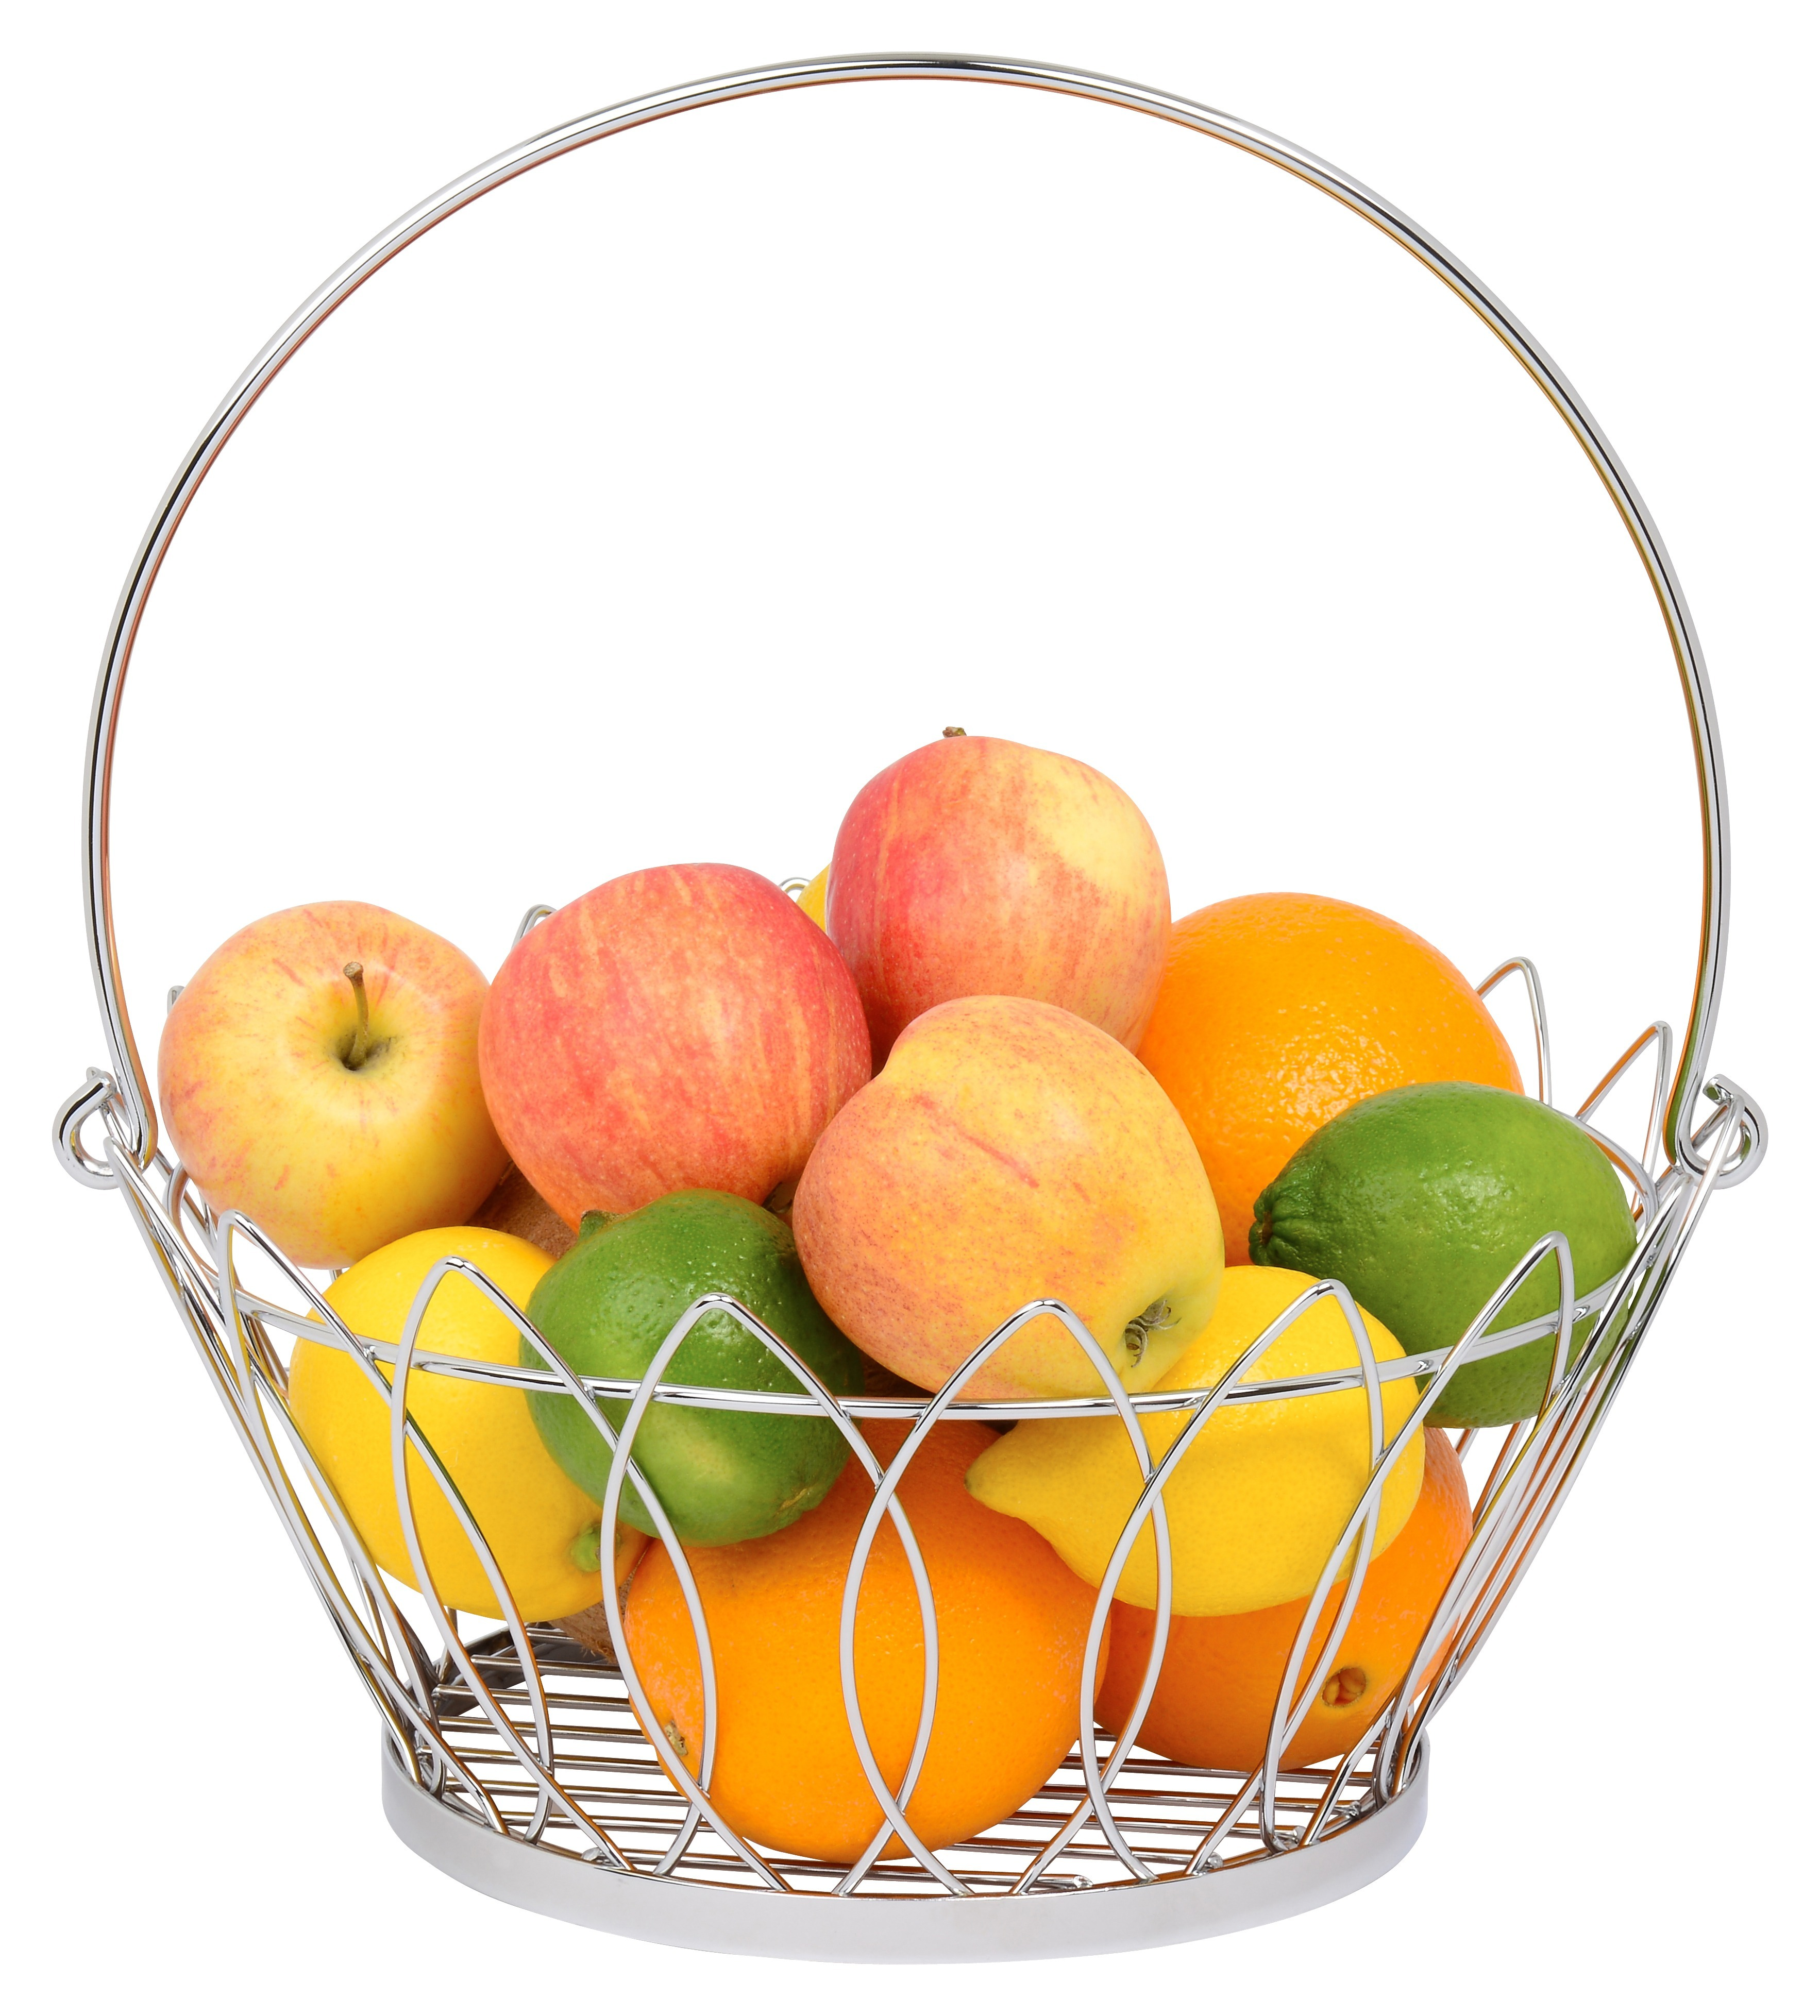 Fruit Bowl - High Quality Stainless Steel with Shiny Chrome Polish